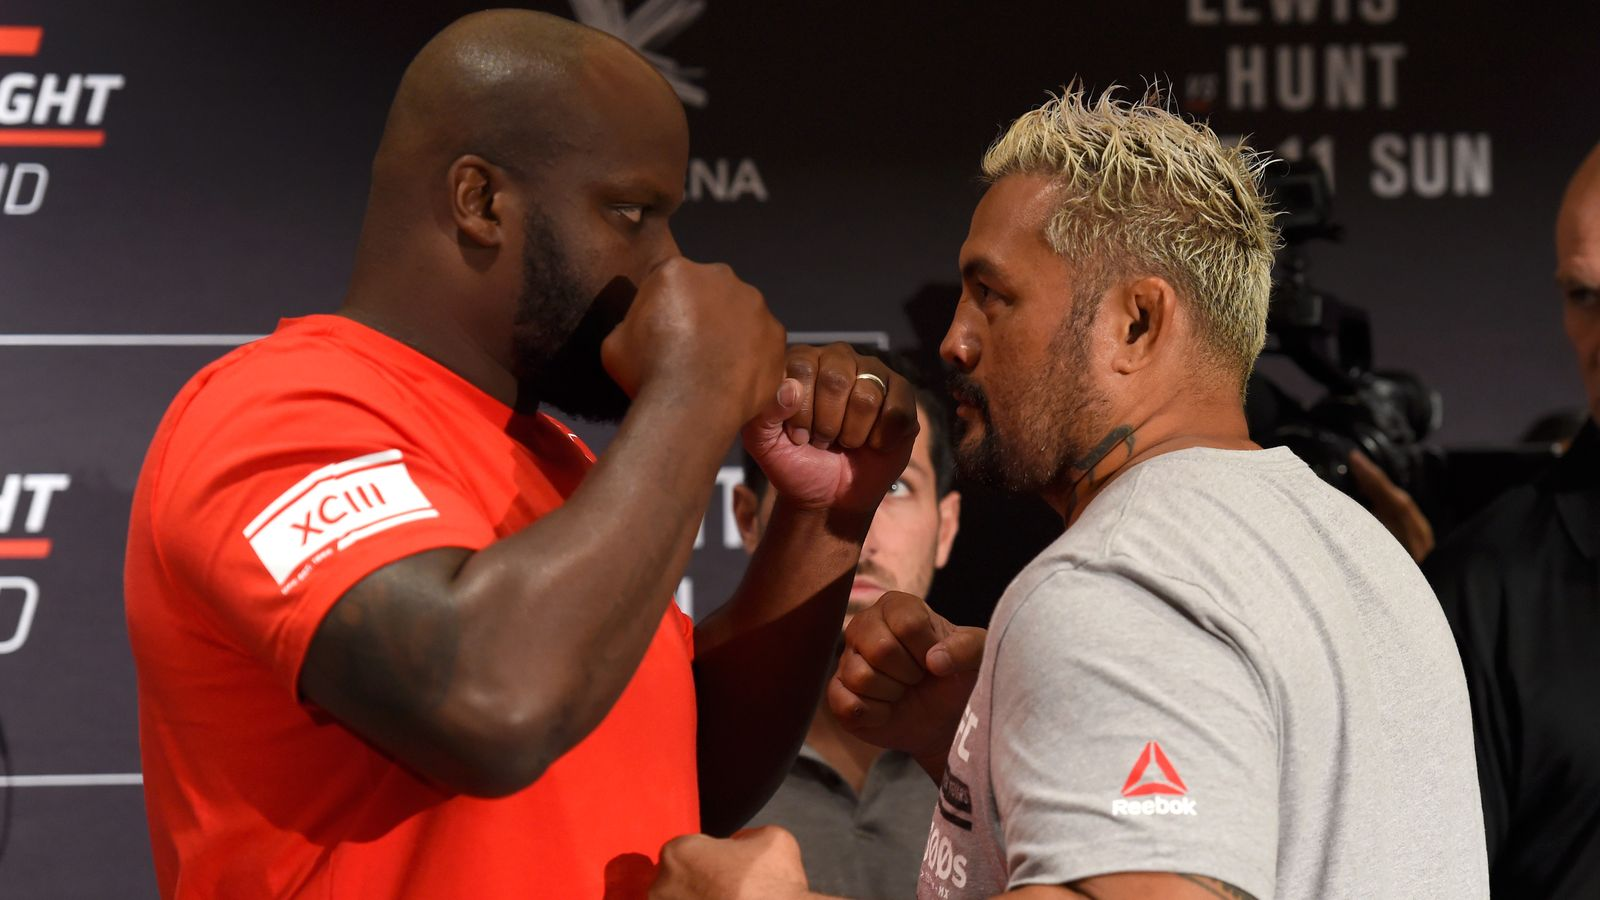 AUCKLAND, NEW ZEALAND - JUNE 08:  (L-R) Opponents Derrick Lewis and Mark Hunt of New Zealand face off during the UFC Fight Night Ultimate Media Day at the Langham Hotel on June 8, 2017 in Auckland, New Zealand. (Photo by Josh Hedges/Zuffa LLC/Zuffa LLC via Getty Images)